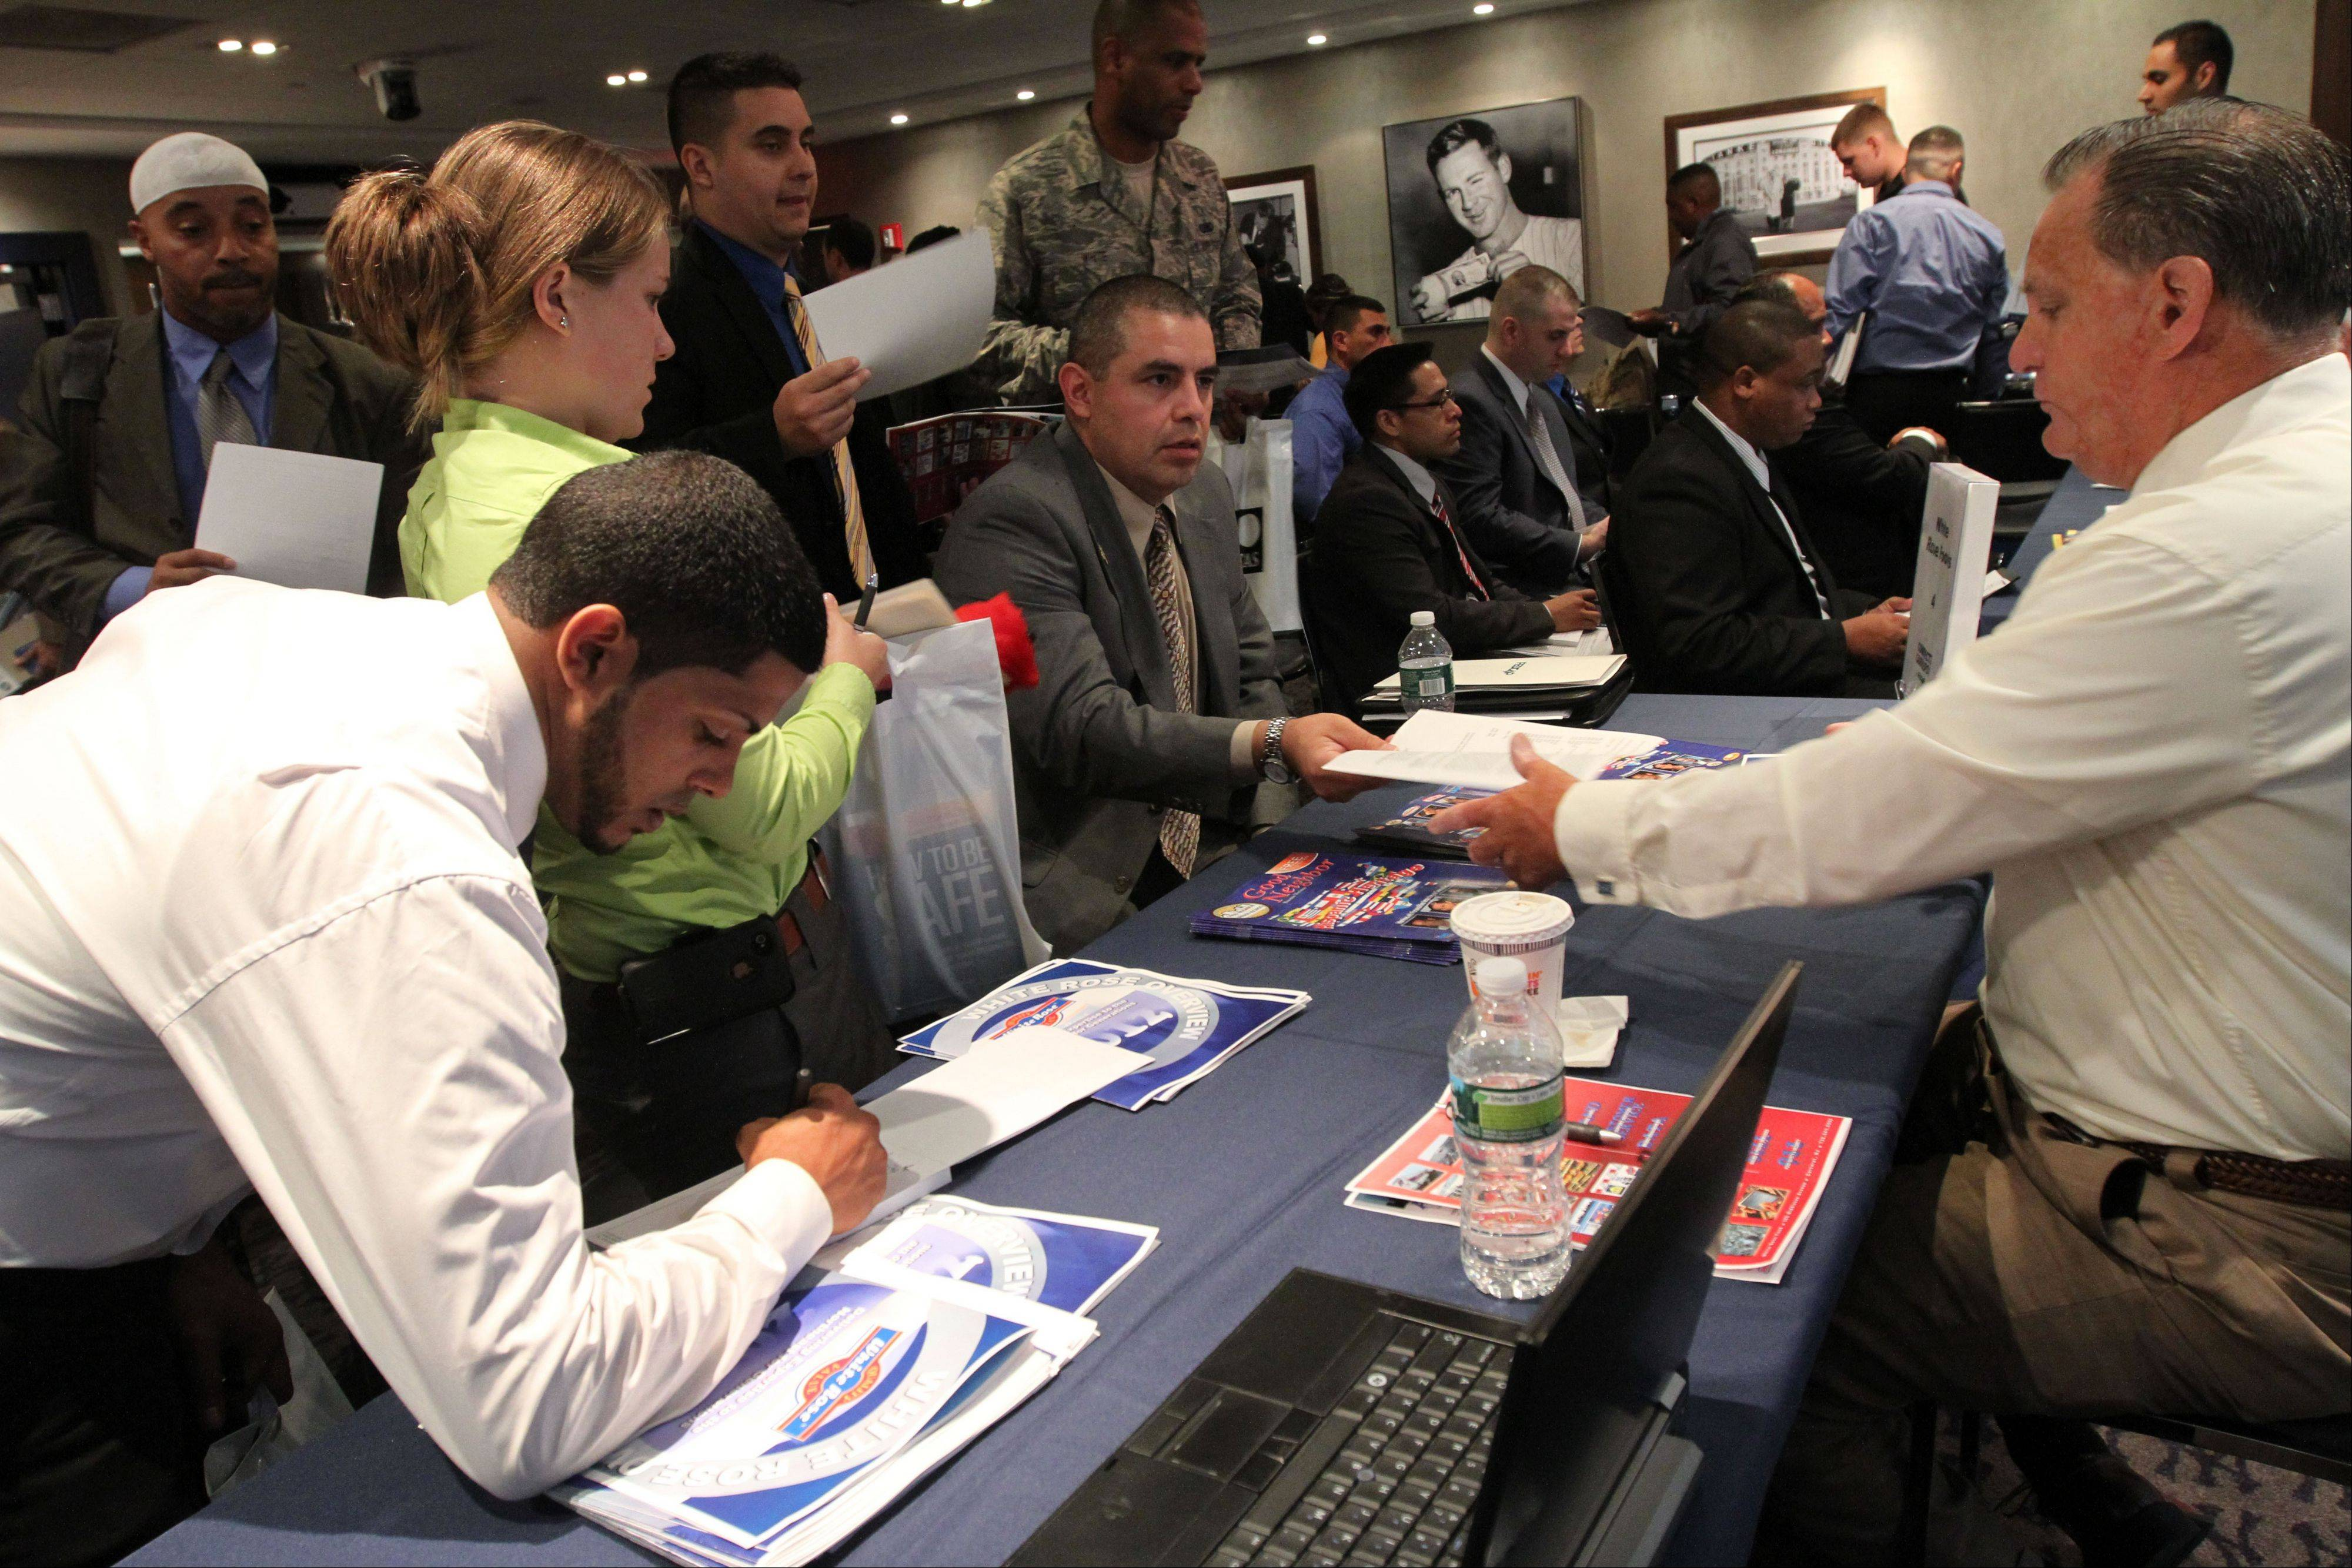 In this Sept. 28 photo, Veteran Luis Gomez, 40, from Dover, N.J., seated center, hands his resume to a representative from White Rose Foods, right, during a job fair at Yankee Stadium in the Bronx borough of New York. A private survey released Wednesday, shows that U.S. businesses hired fewer workers in September than August, a sign that slow growth may be holding back hiring. Payroll processor ADP said Wednesday that companies added 162,000 jobs last month. That's below August's total of 189,000, which was revised lower.